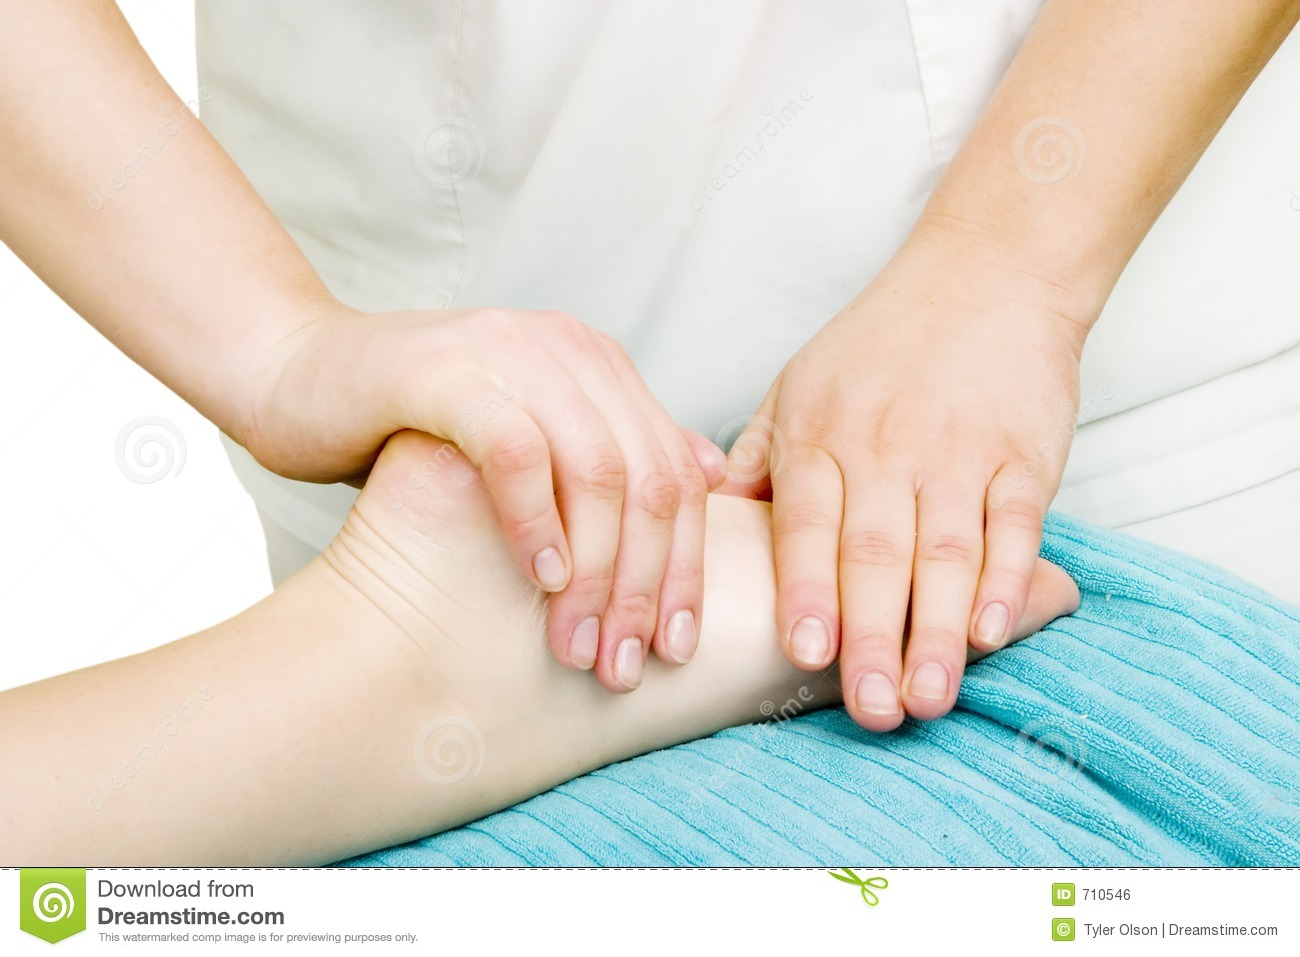 Foot Massage Royalty Free Stock Image - Image: 710546